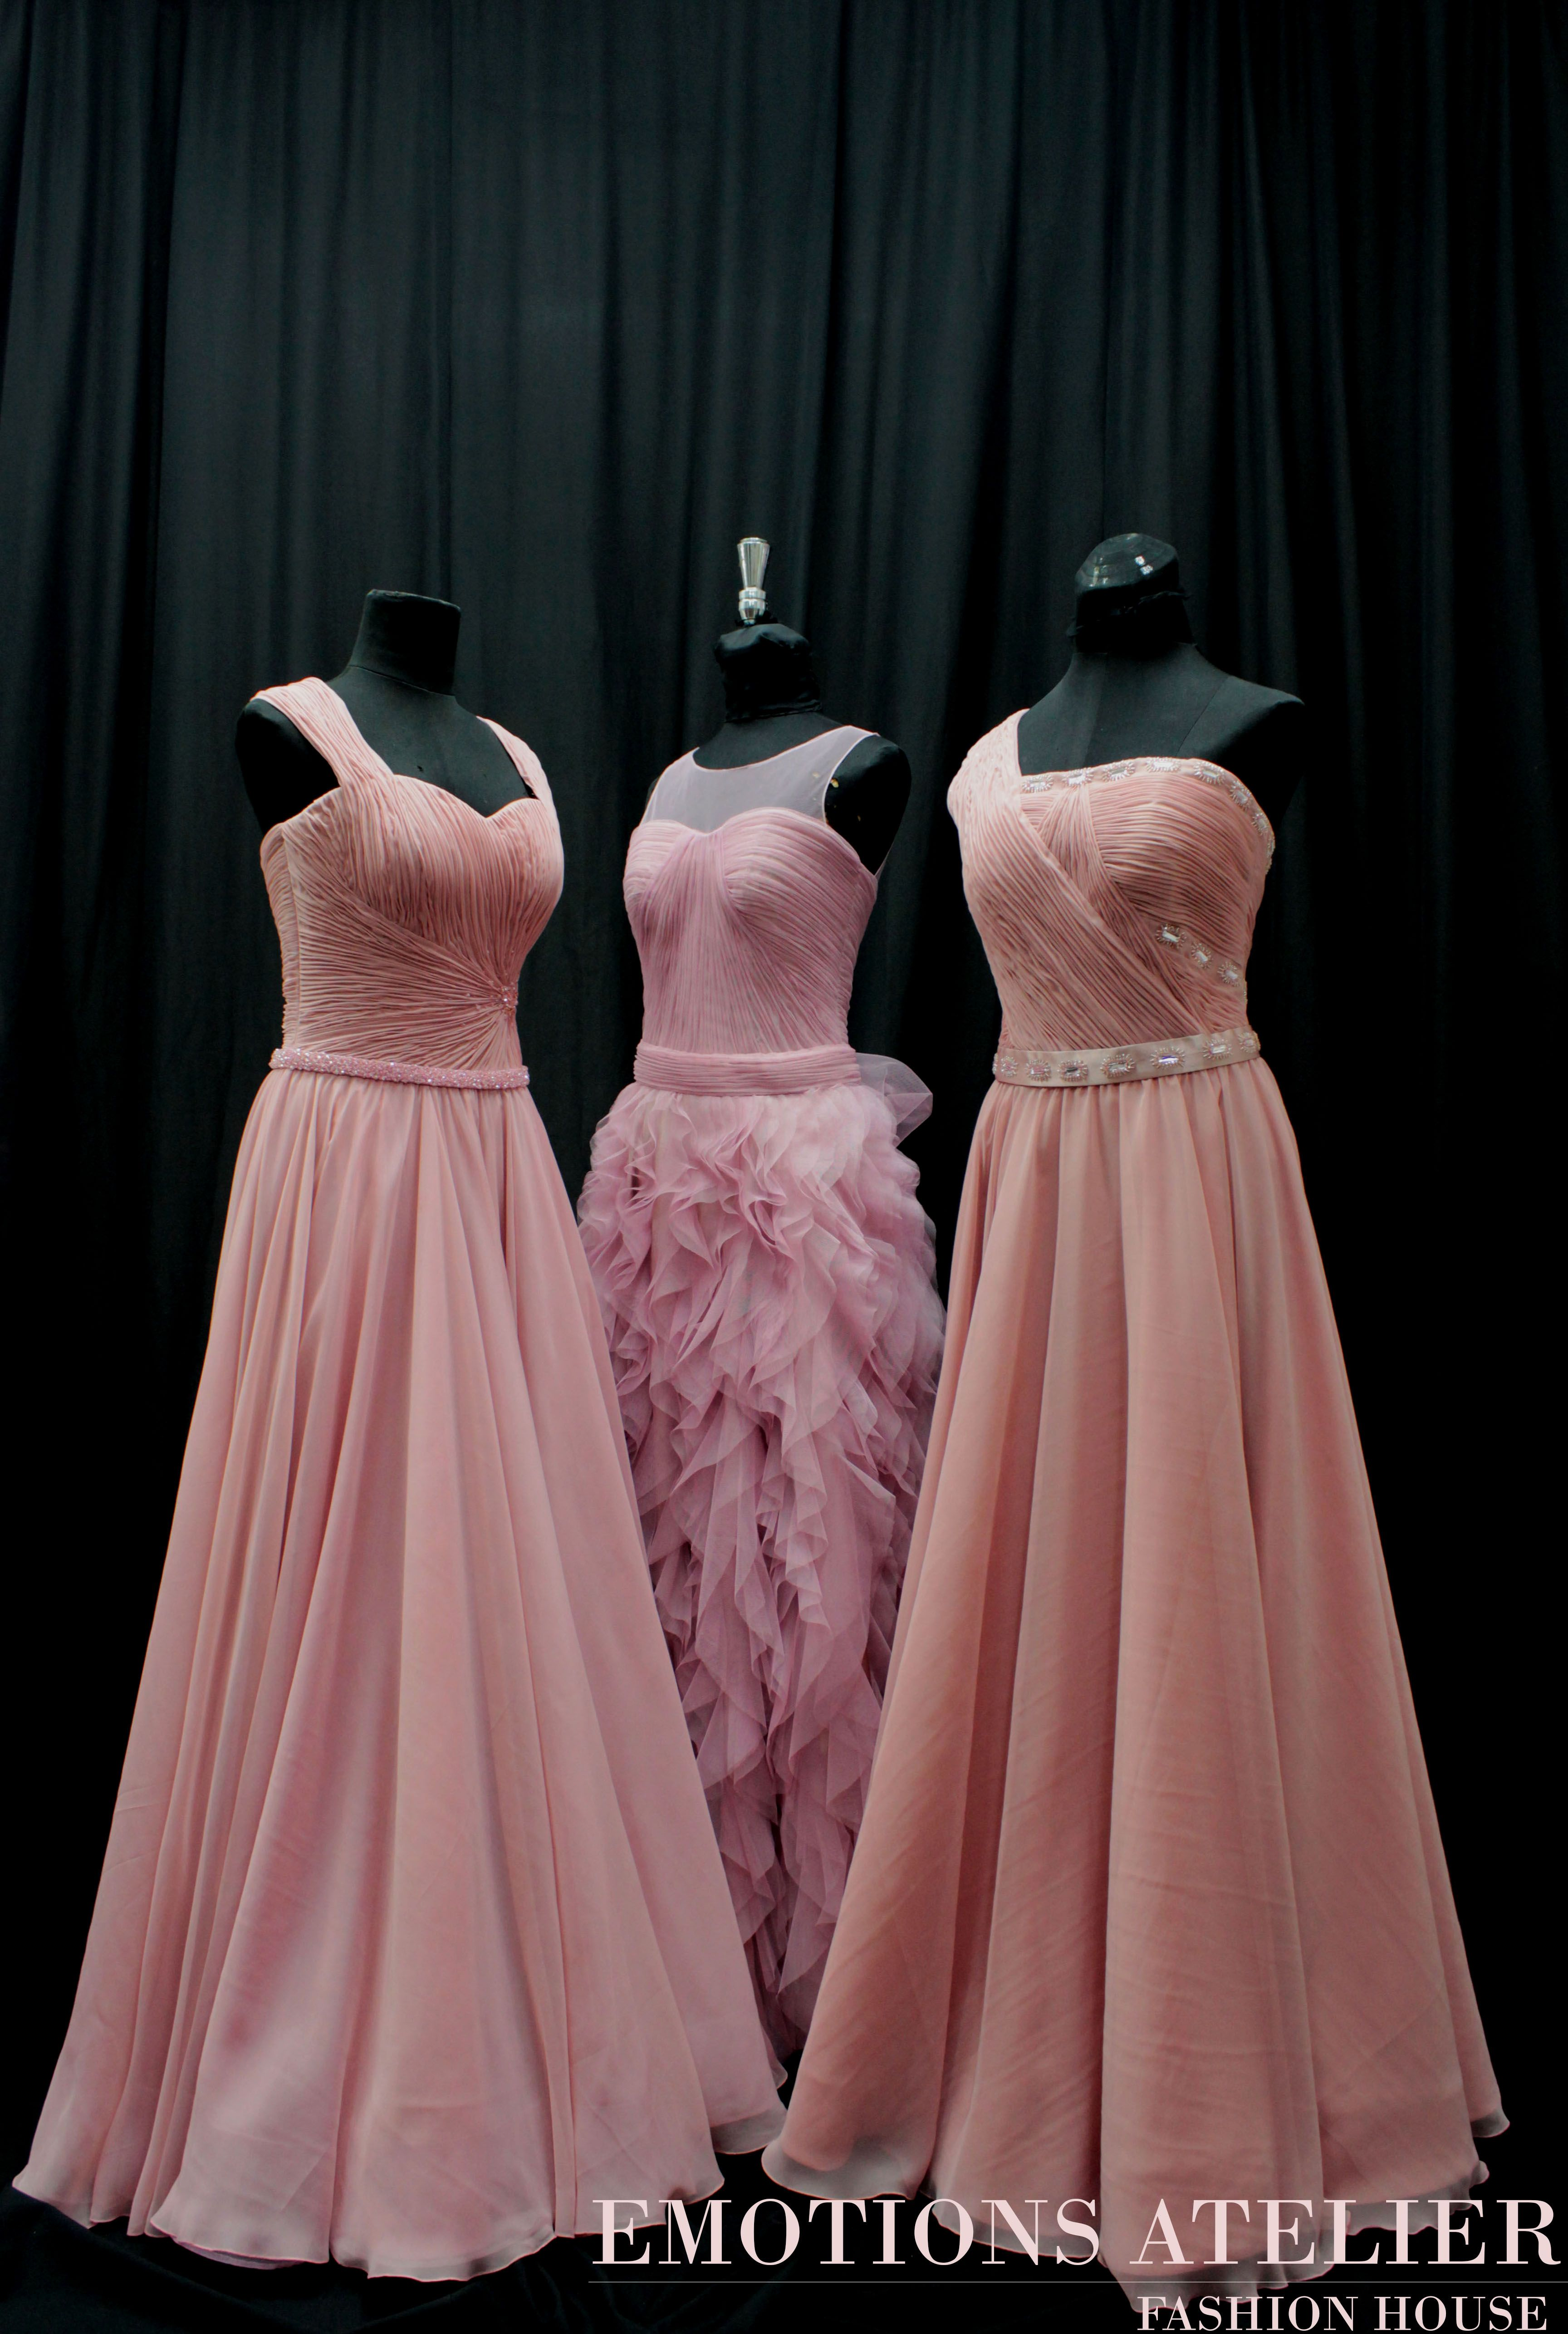 EMOTIONS ATELIER MADE-TO-MEASURE FOR BRIDAL GOWNS, EVENING WEAR ...